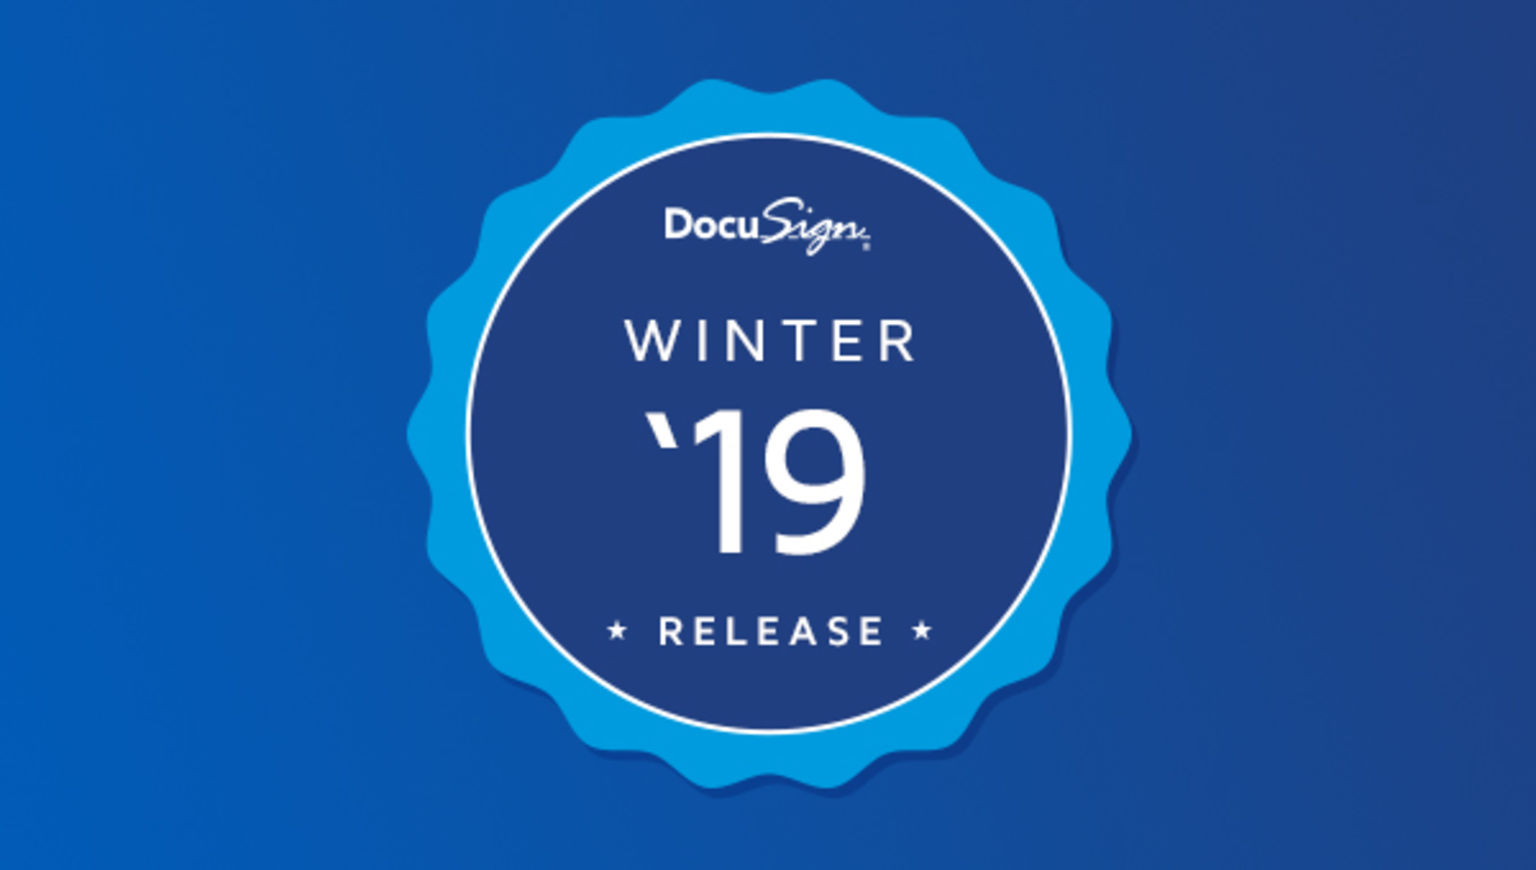 DocuSign Winter '19 Release launches